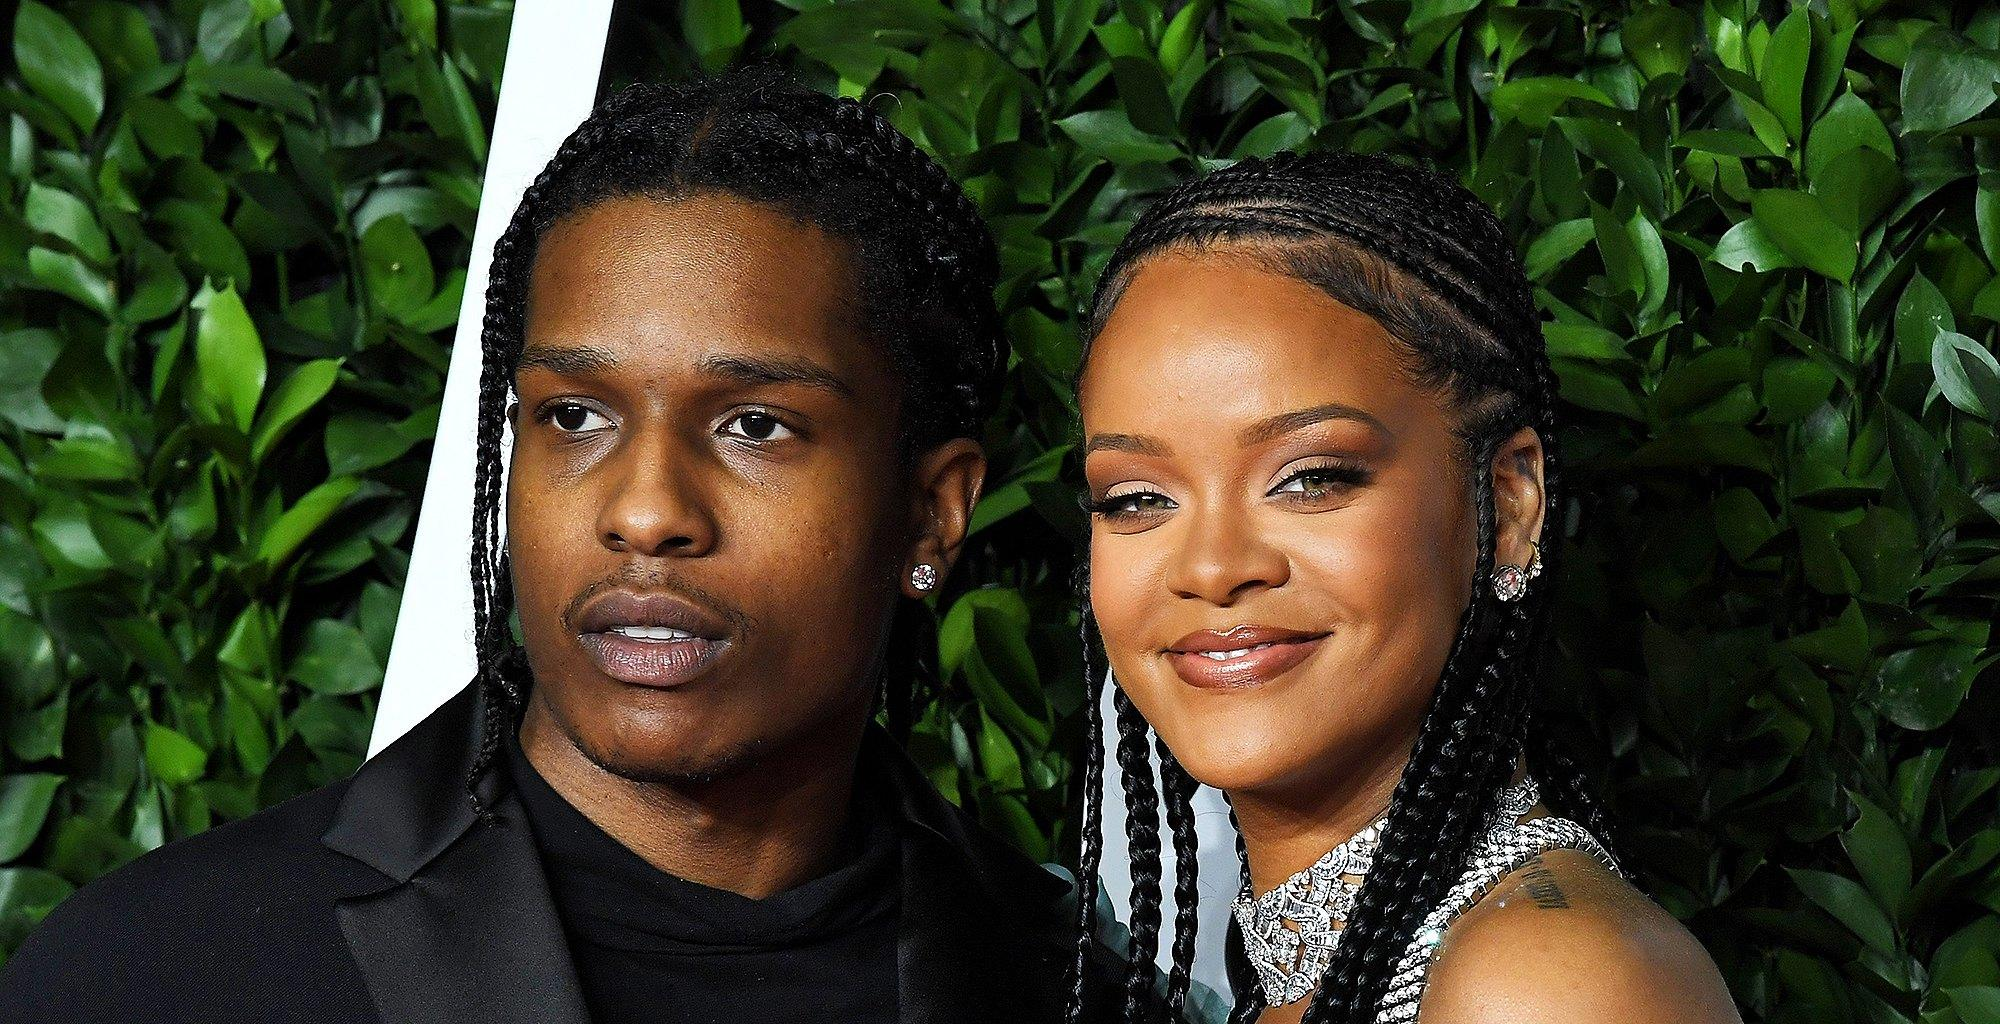 Rihanna And A$AP Rocky - Here's How Their Decade-Long Friendship Finally Became A Romance!